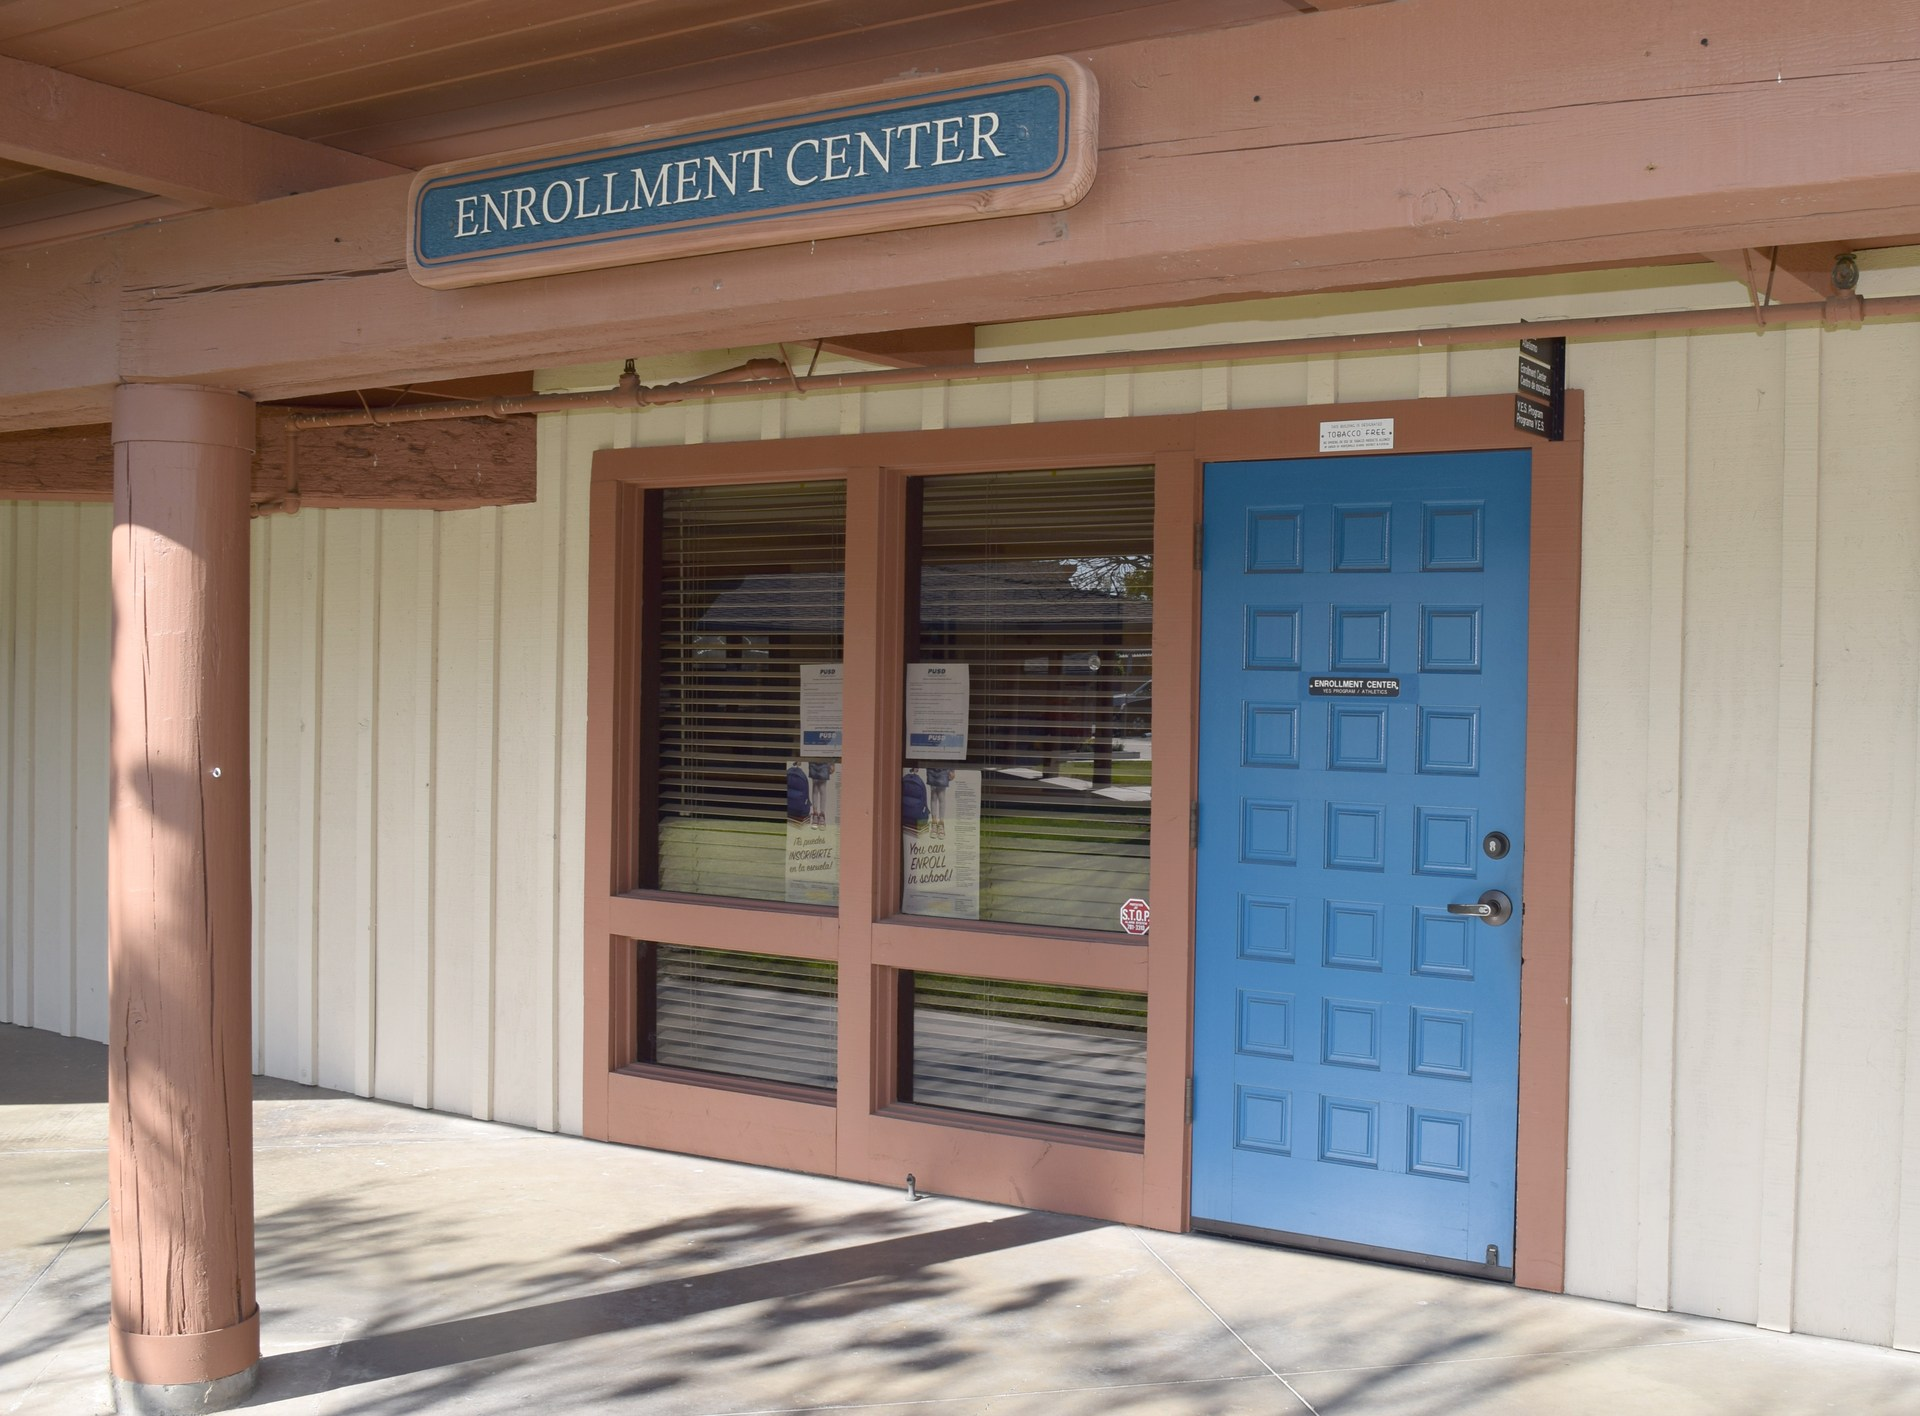 PUSD Enrollment Center